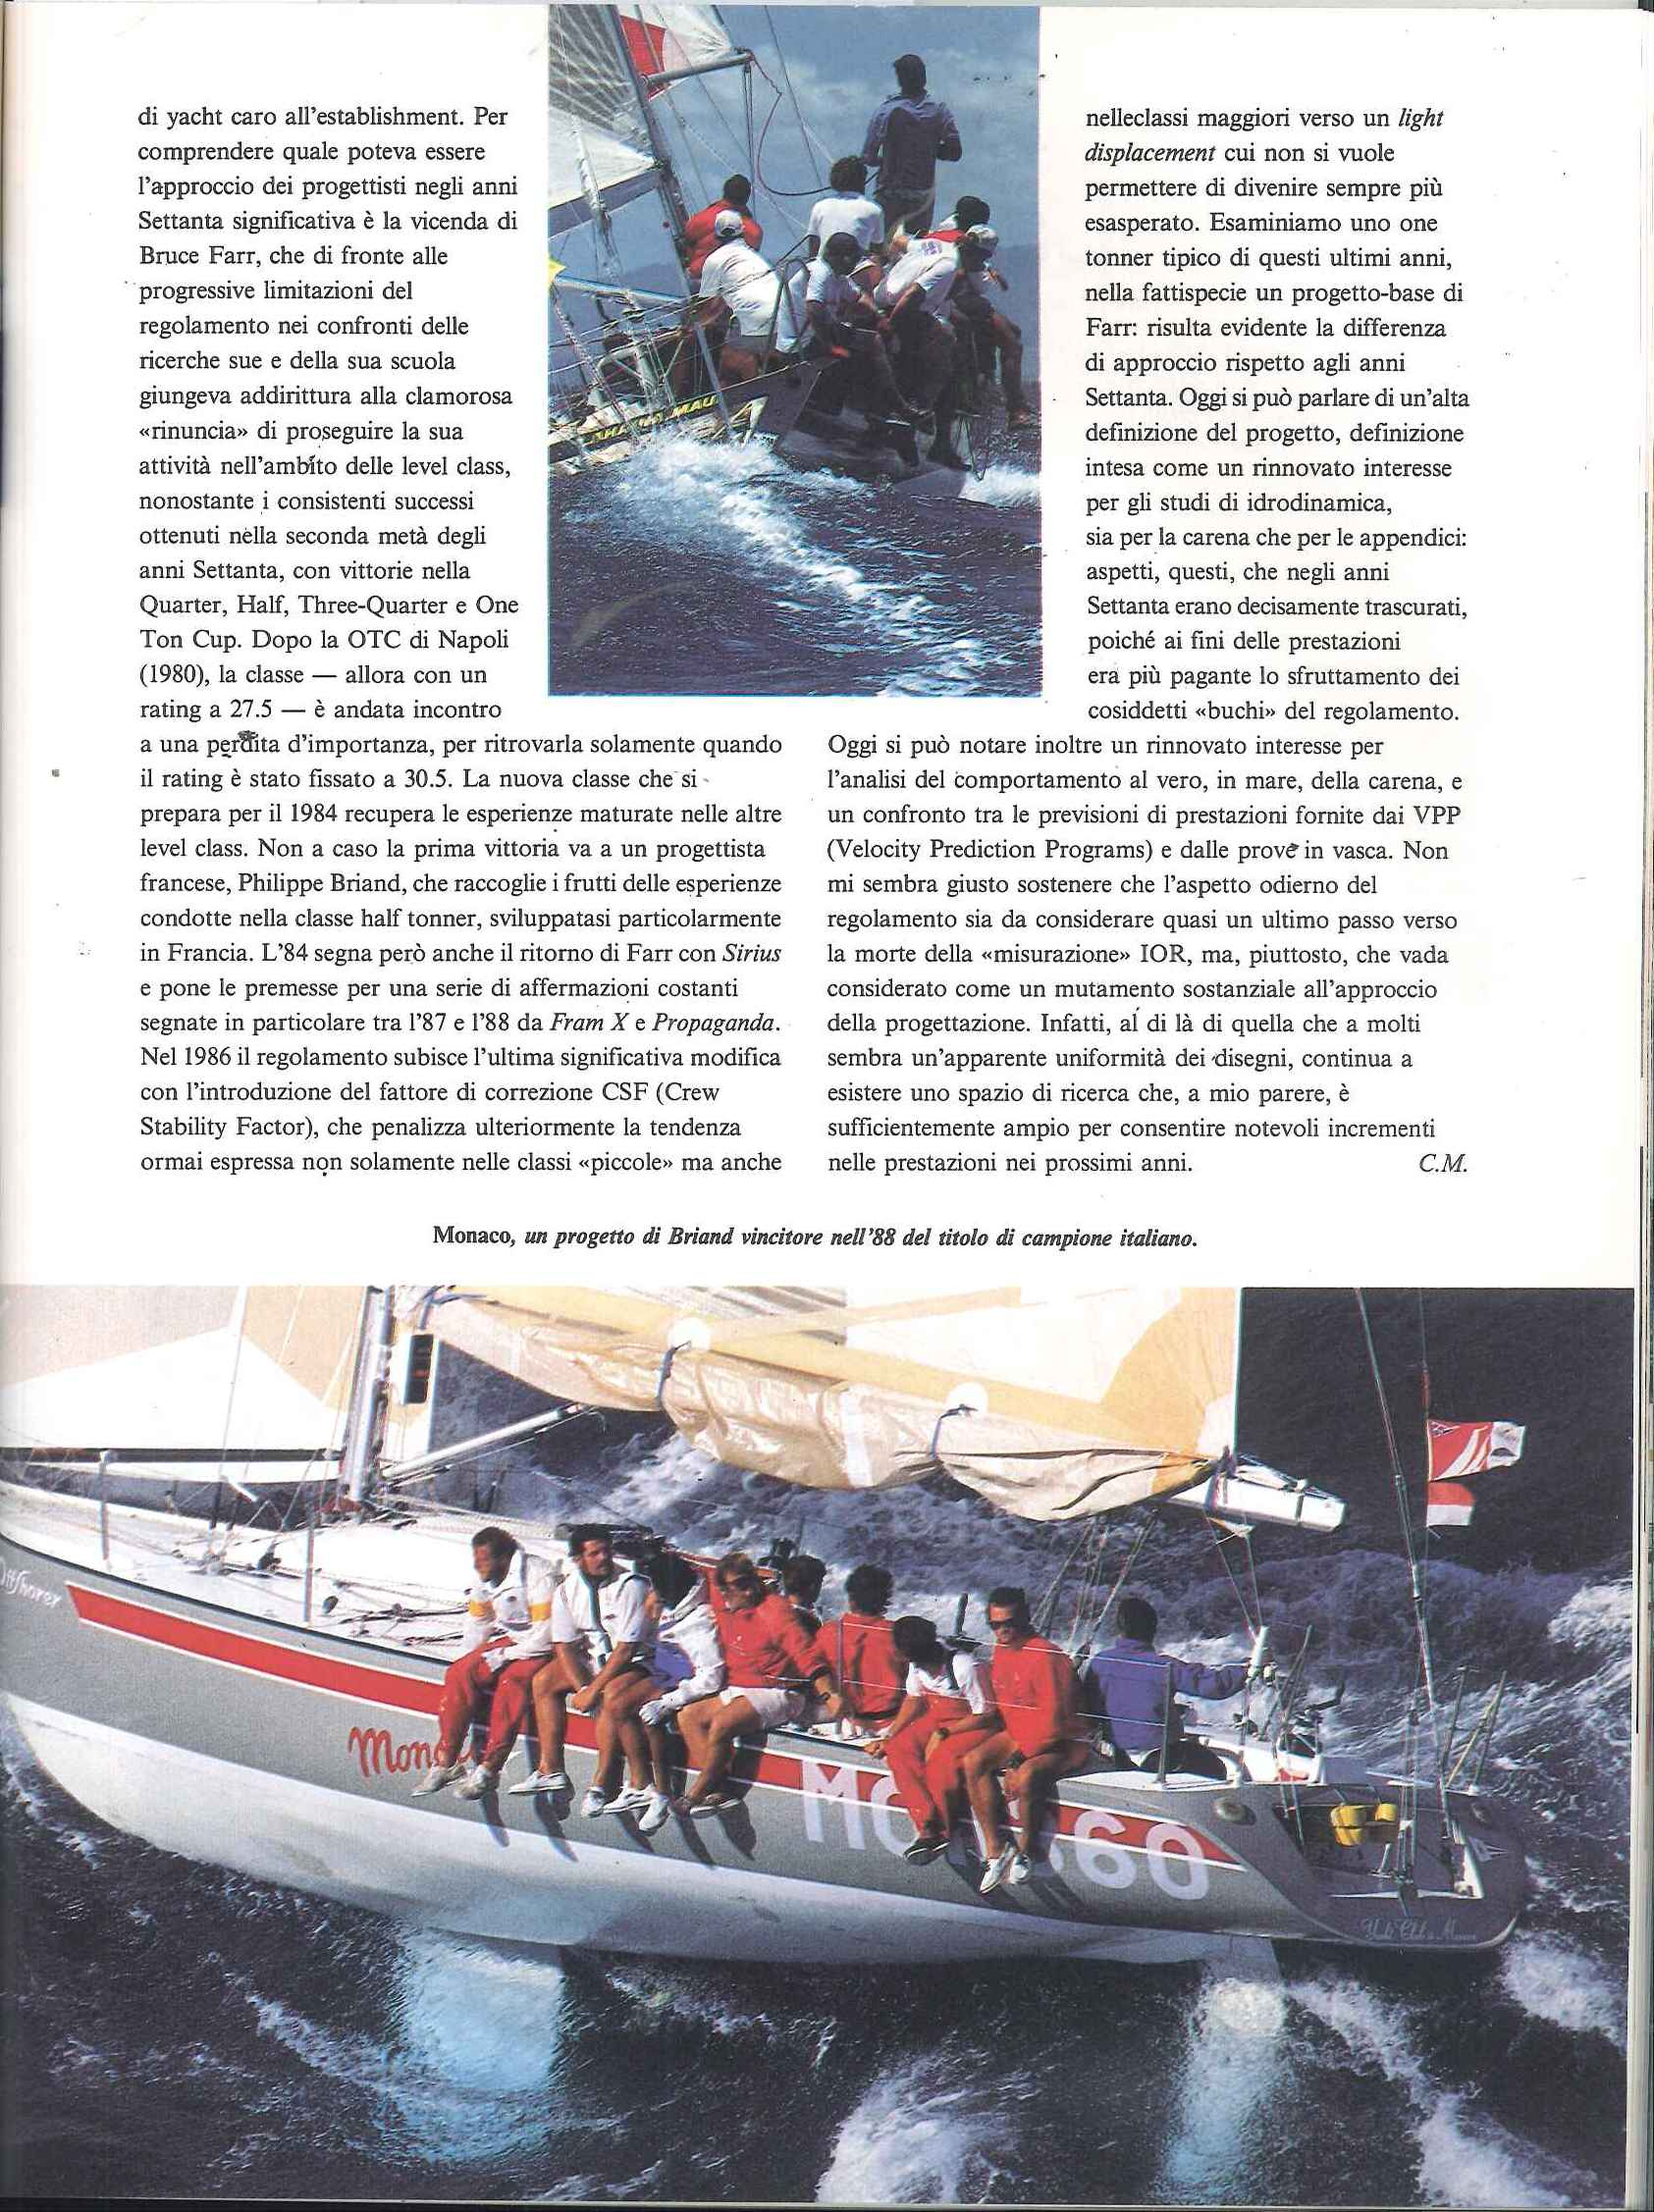 1989 04 PRESS ONE TON CUP UOMO MARE 129 (10).jpg